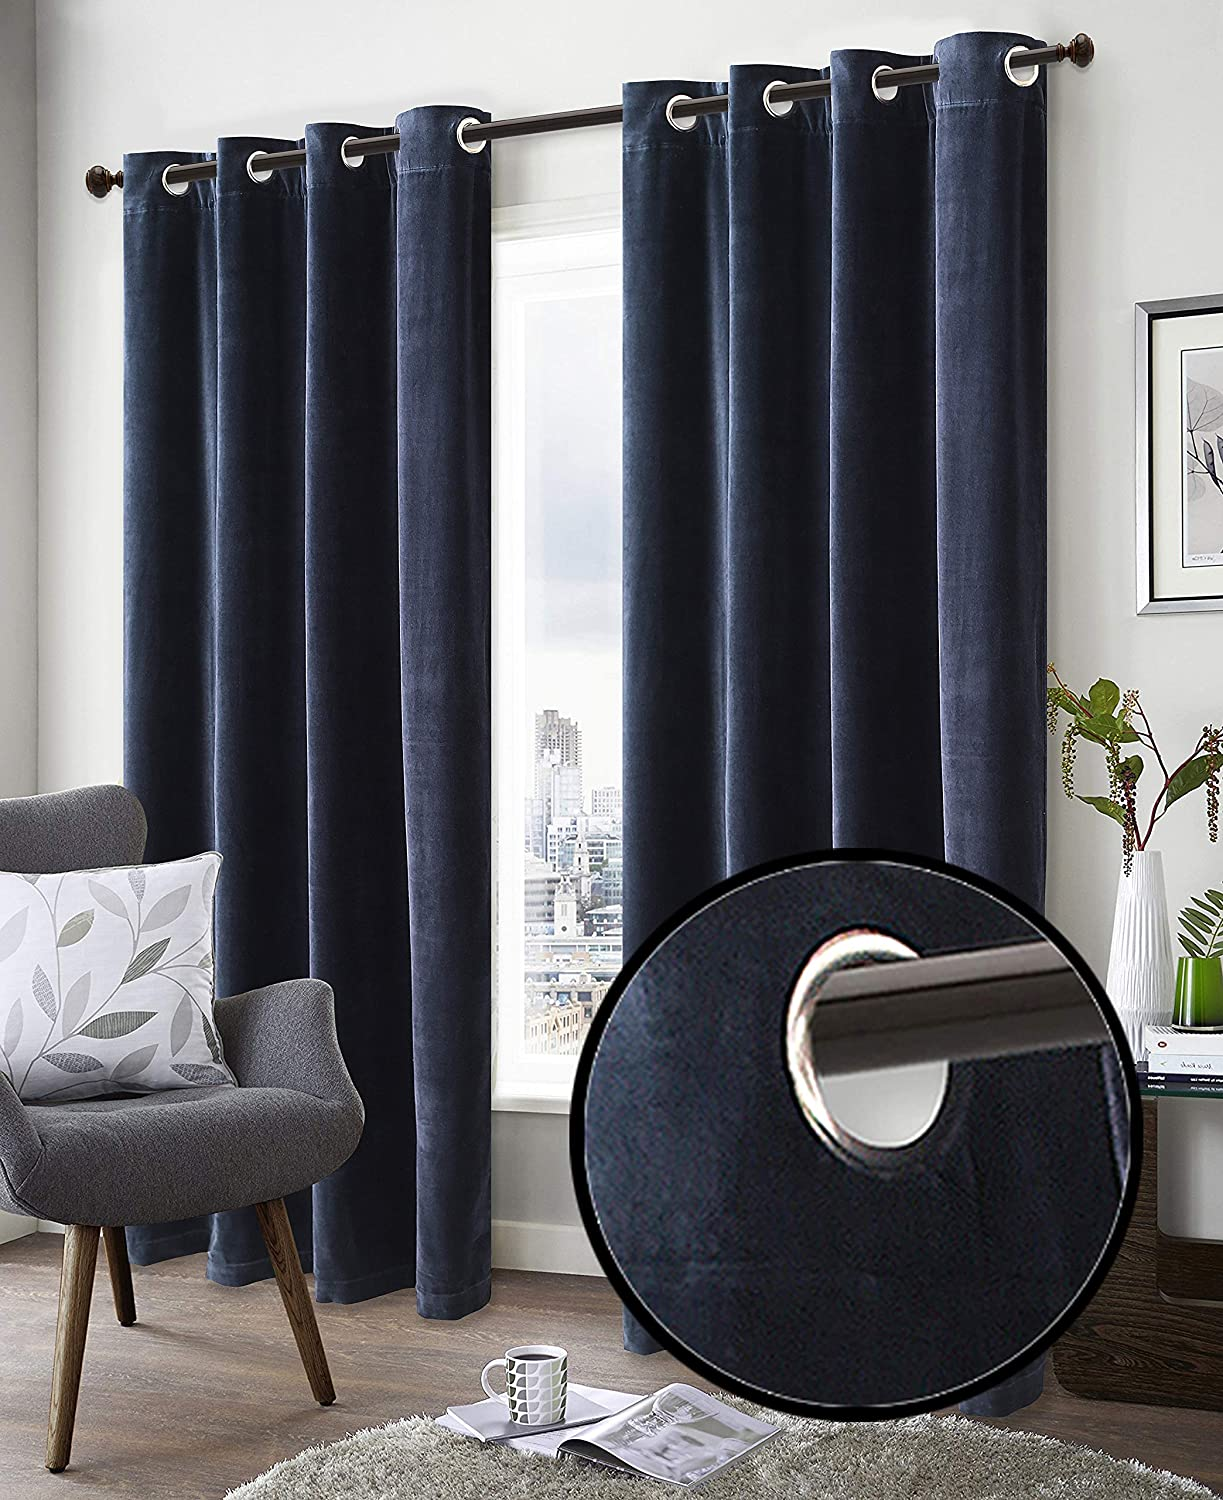 Super Soft Luxury Velvet Window Curtain, 50 Inch x 72 Inch, Velvet Cotton Grommet Window Curtain Panel, Set of 2, Navy